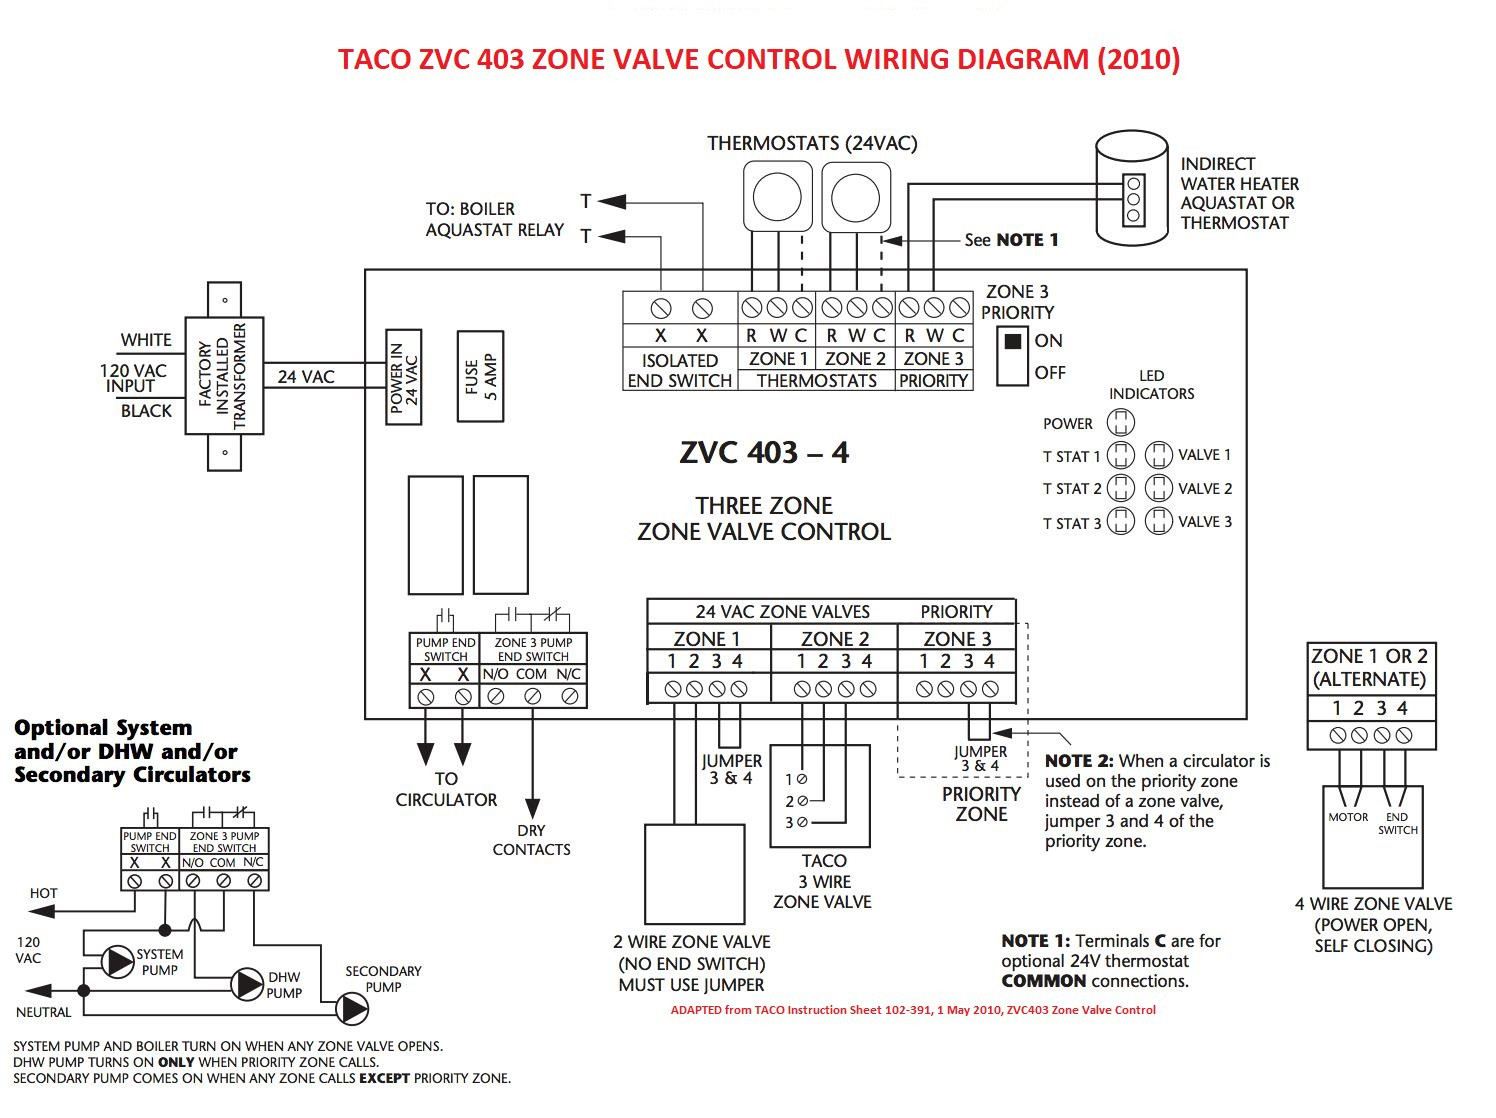 taco sr502 4 wiring diagram Download-Taco Zone Valve Wiring Diagram Elegant Addition Taco Sr503 Wiring Diagram 4 Moreover Taco Pump Wiring 15-h